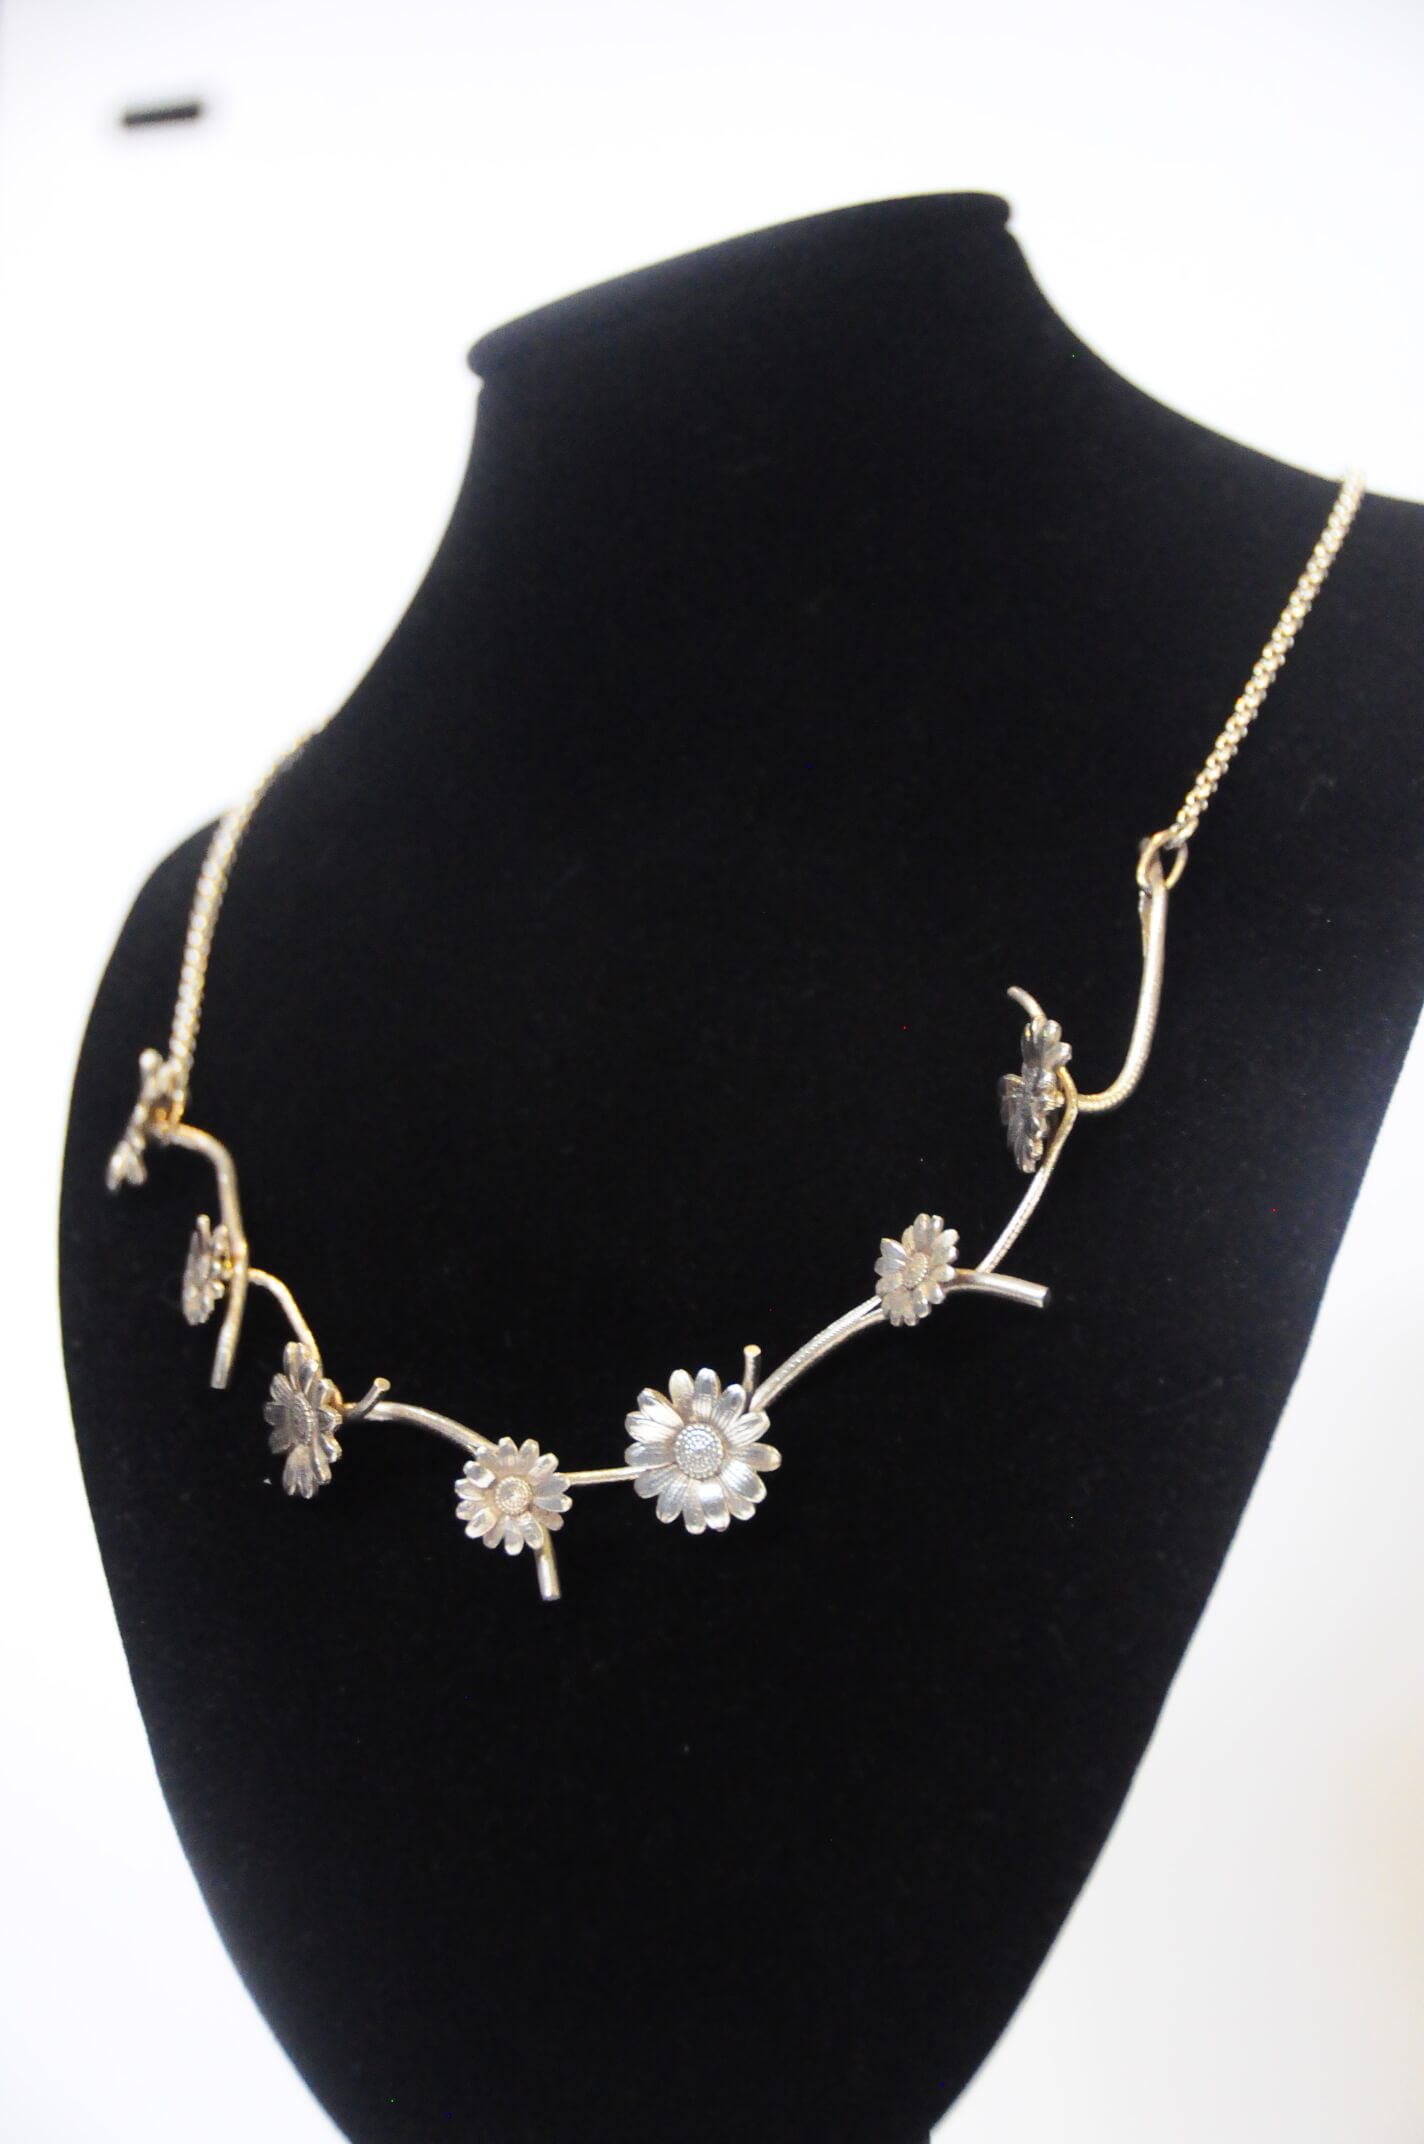 Jewelry Necklace Silver Daisy Links 18'L 23.5g